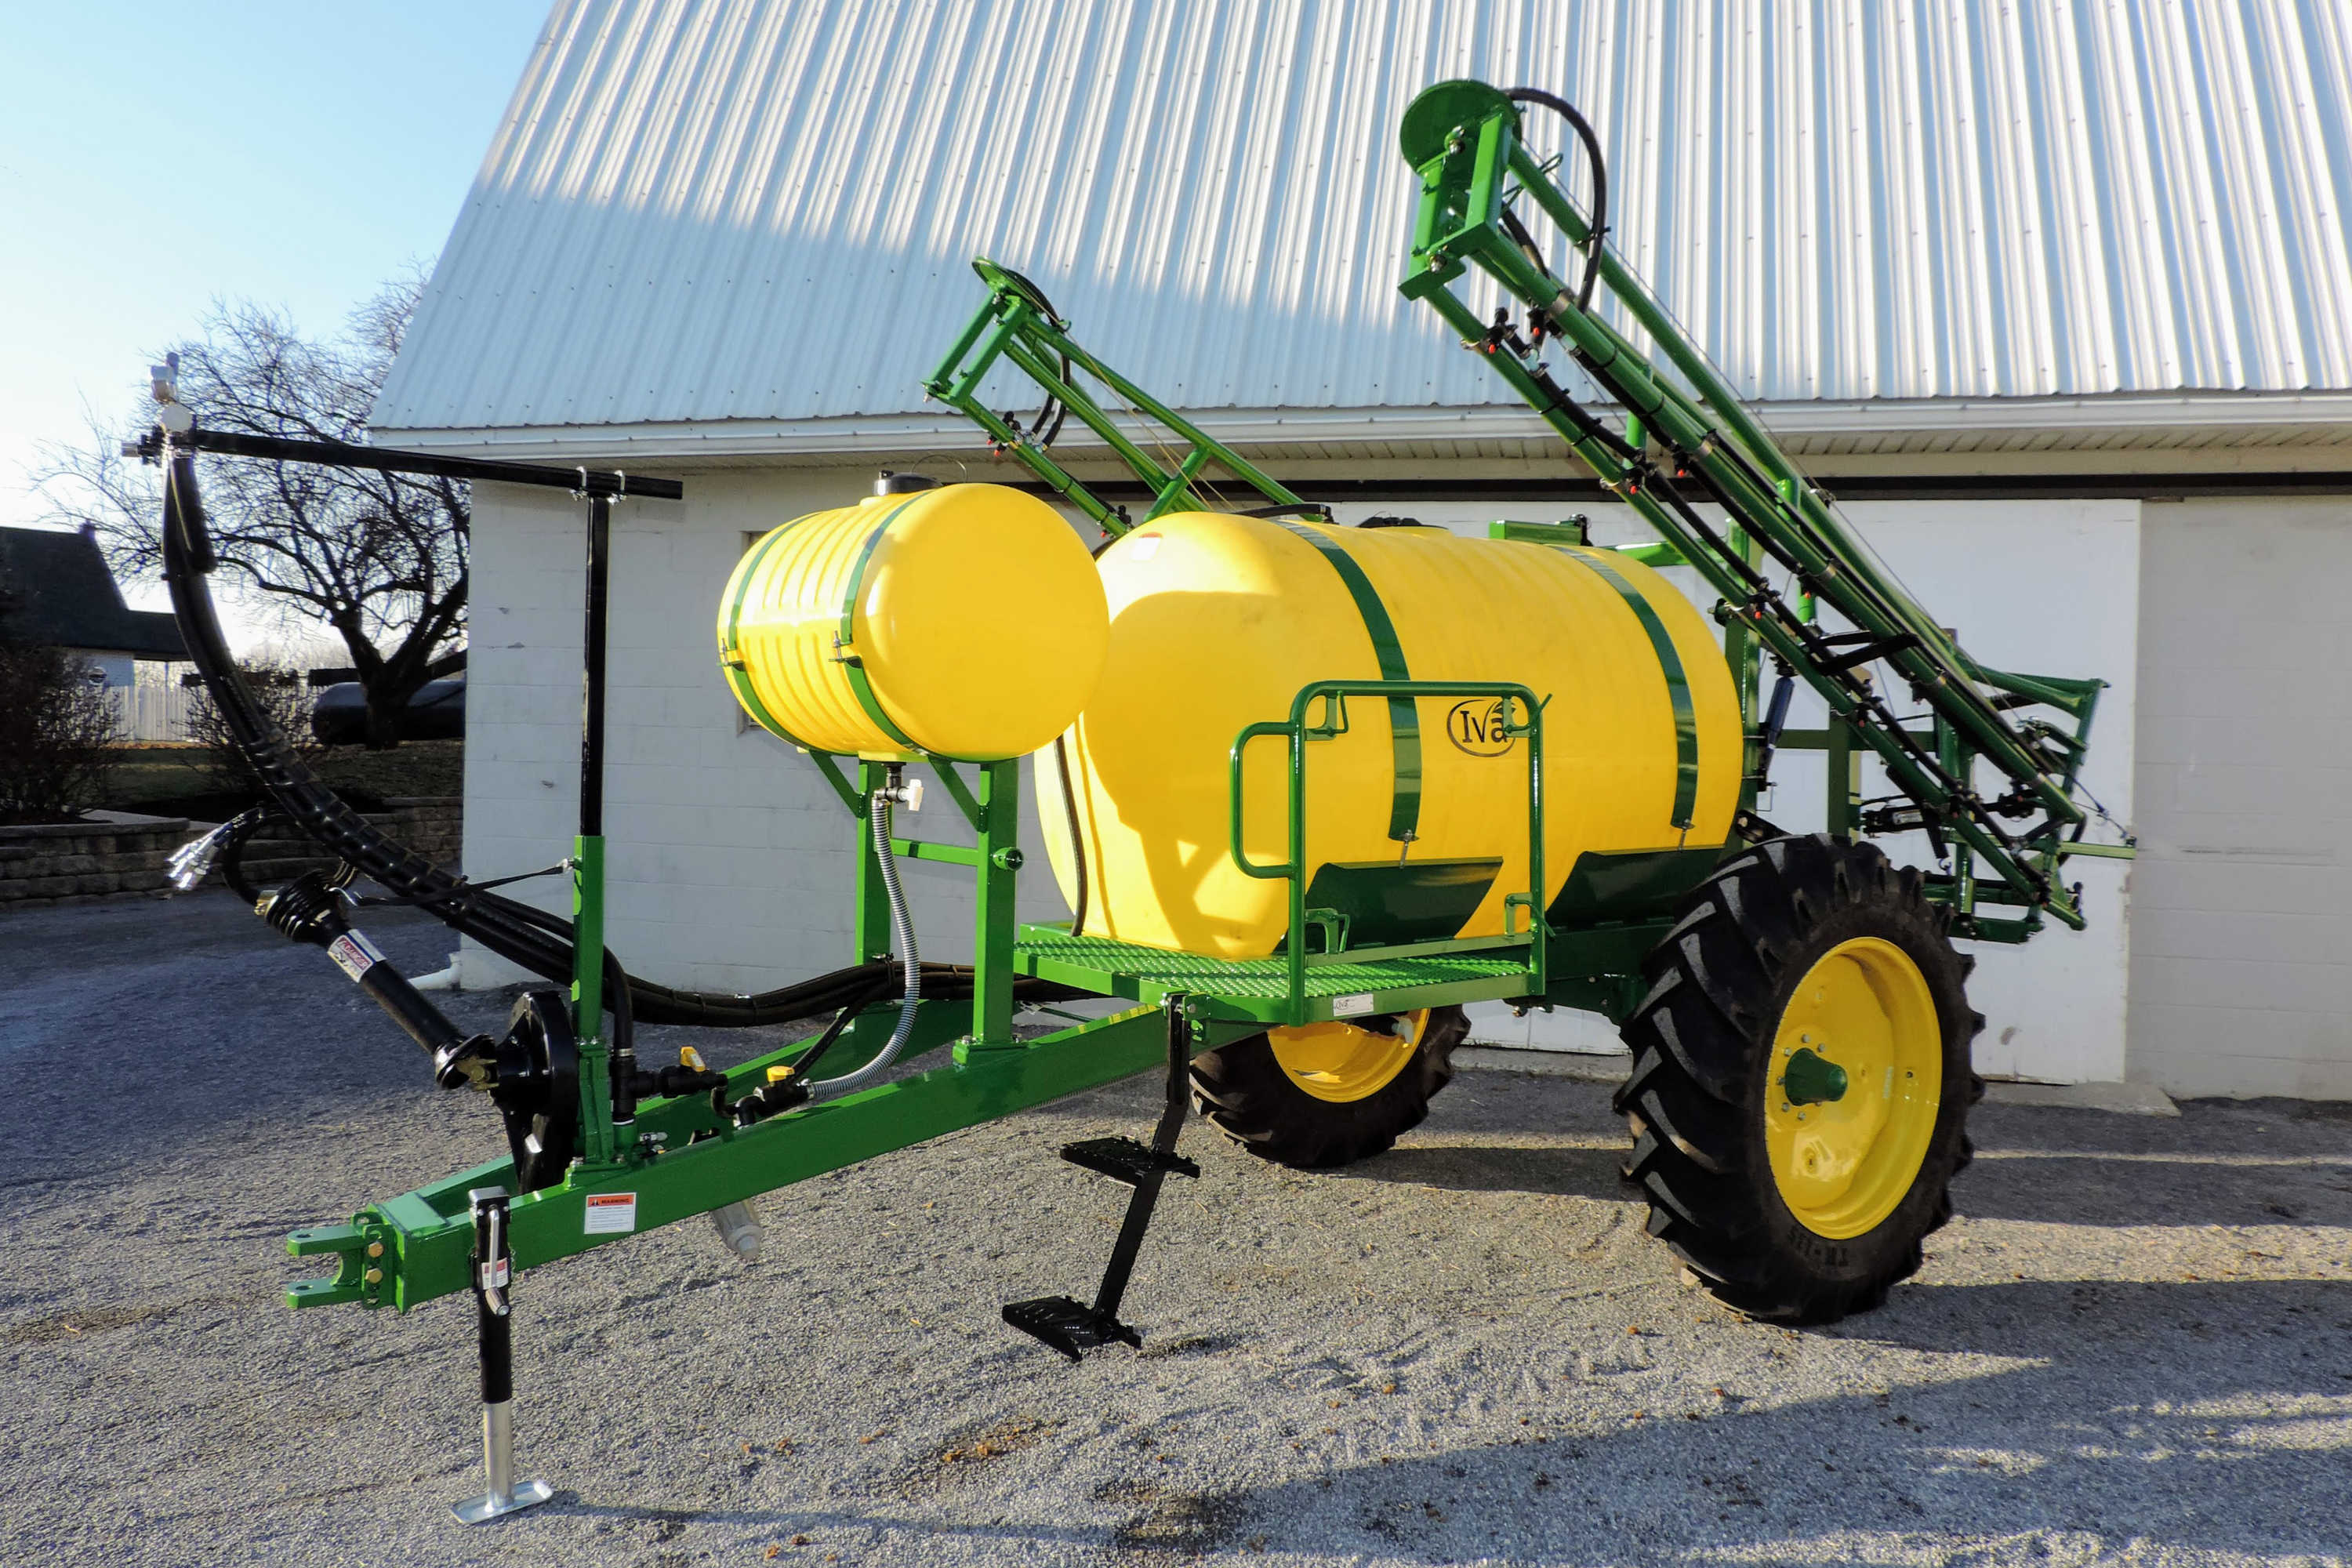 500 gallon Pull Type Sprayer with 45' SpringRide Booms